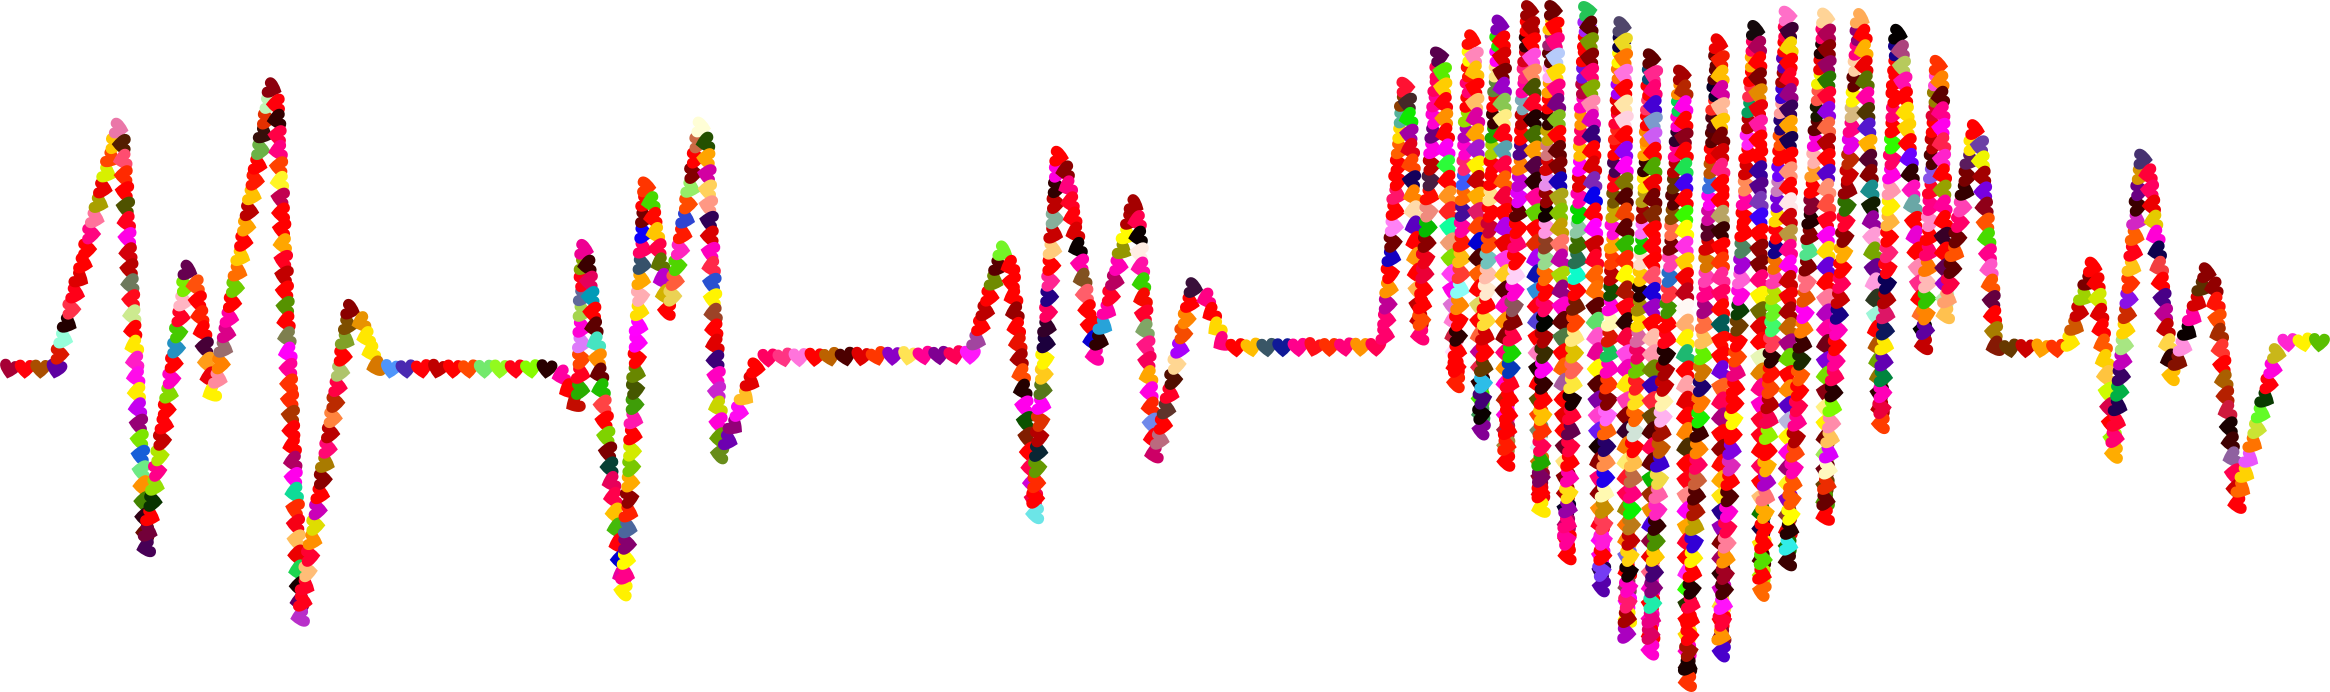 Prismatic Hearts Electrocardiogram by GDJ